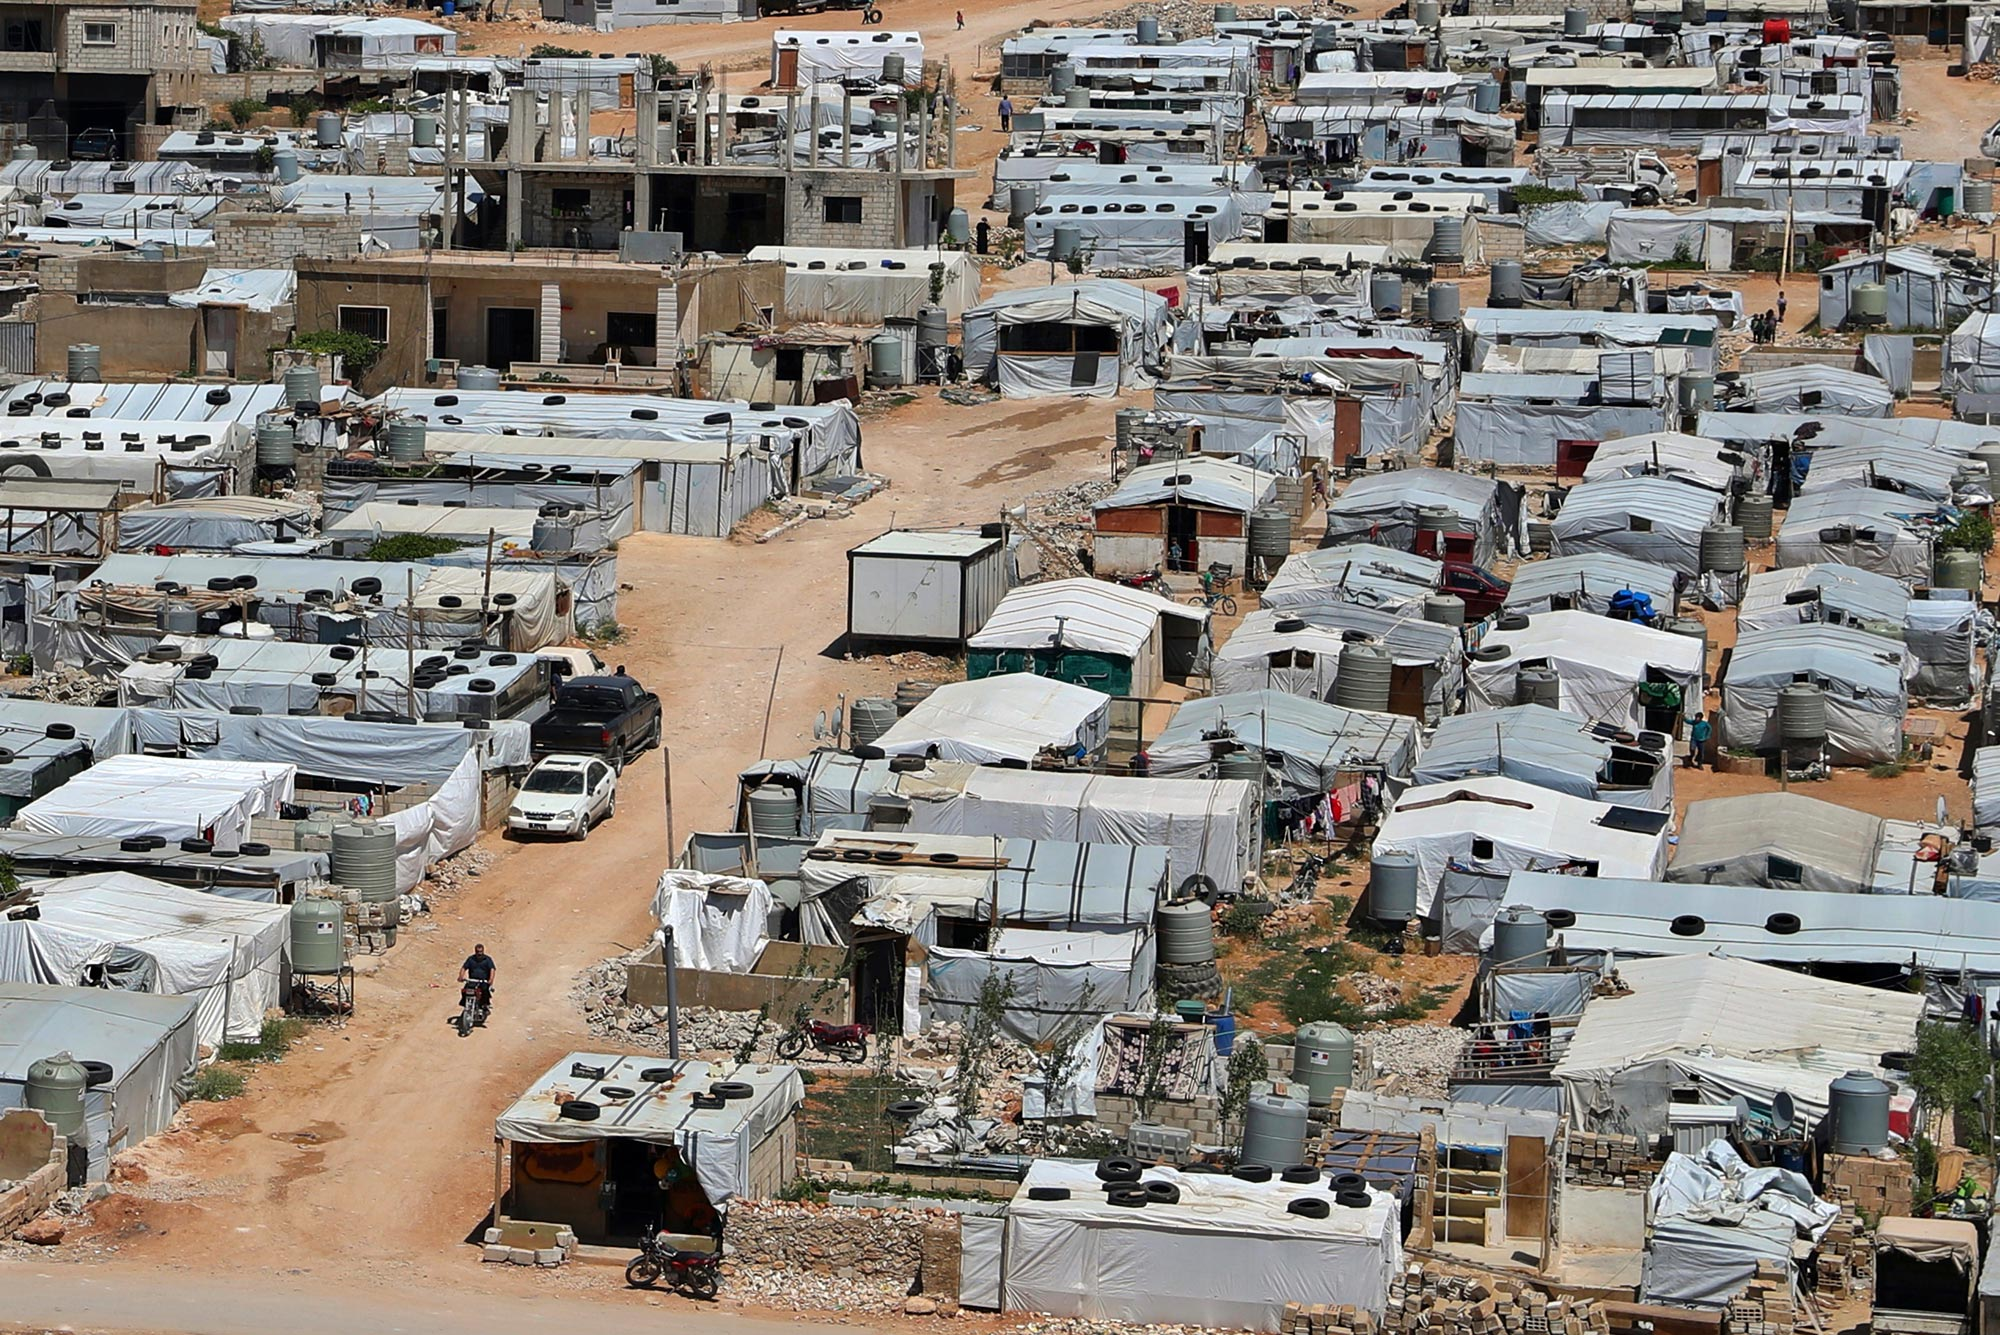 A photo of a refugee camp in Lebanon